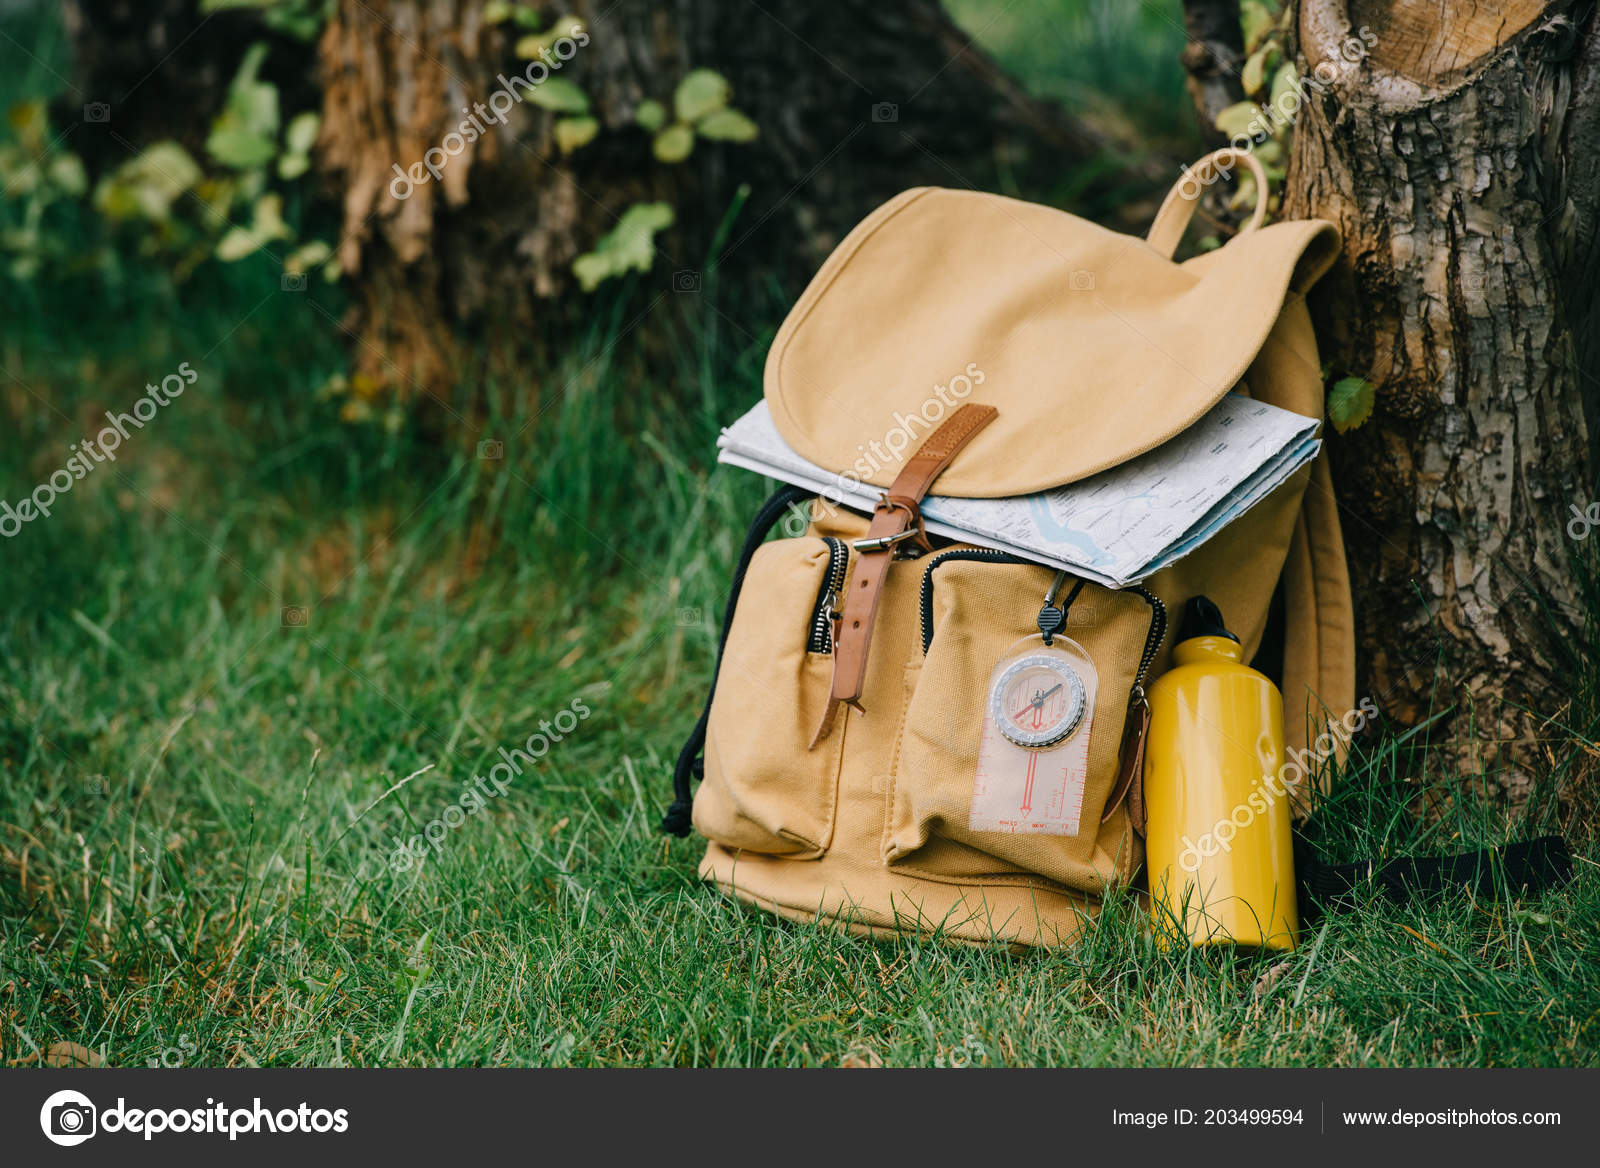 b03b18695c Close View Backpack Compass Map Green Grass — Stock Photo ...